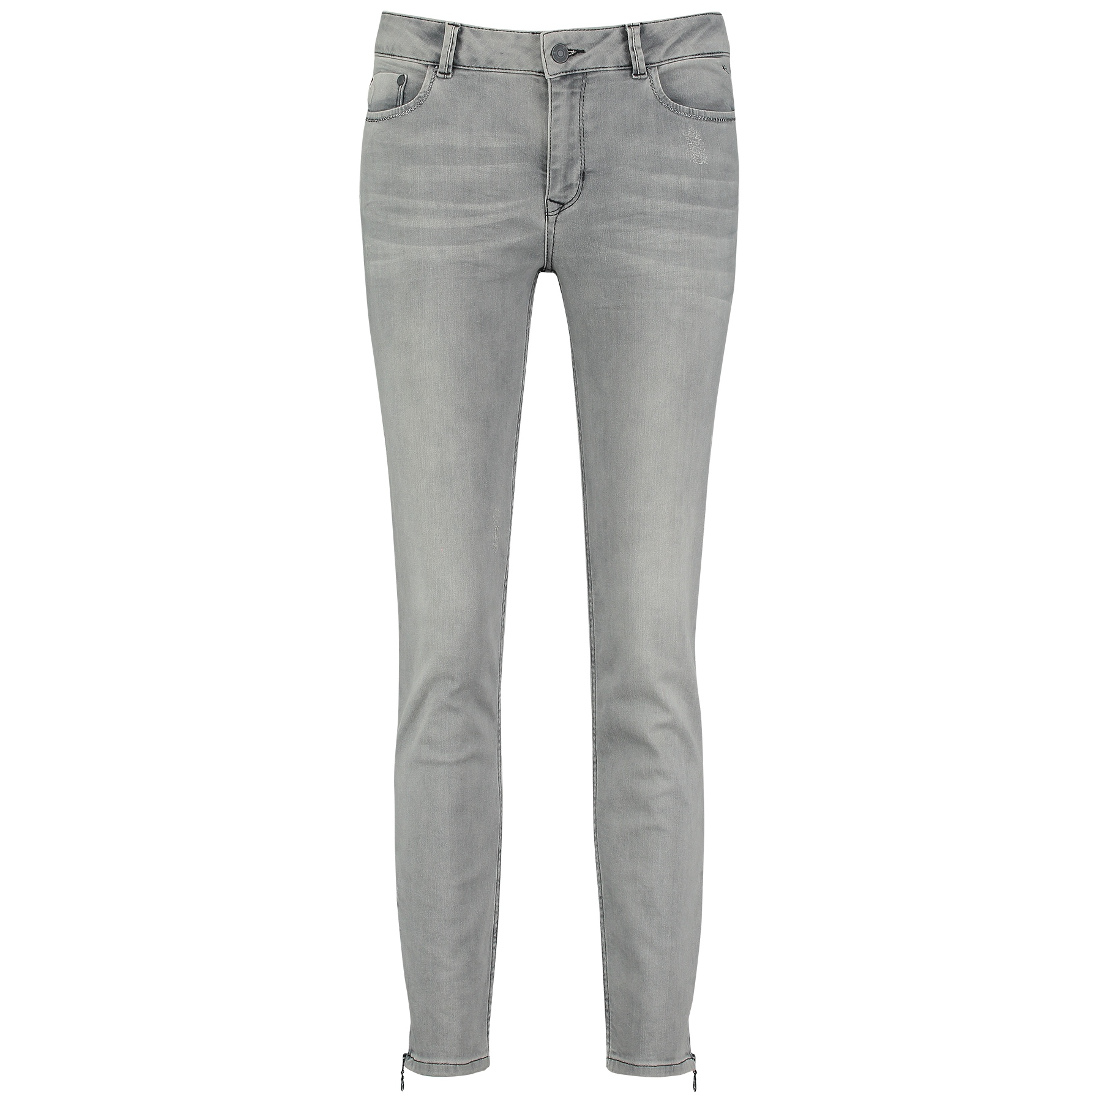 expresso jeans